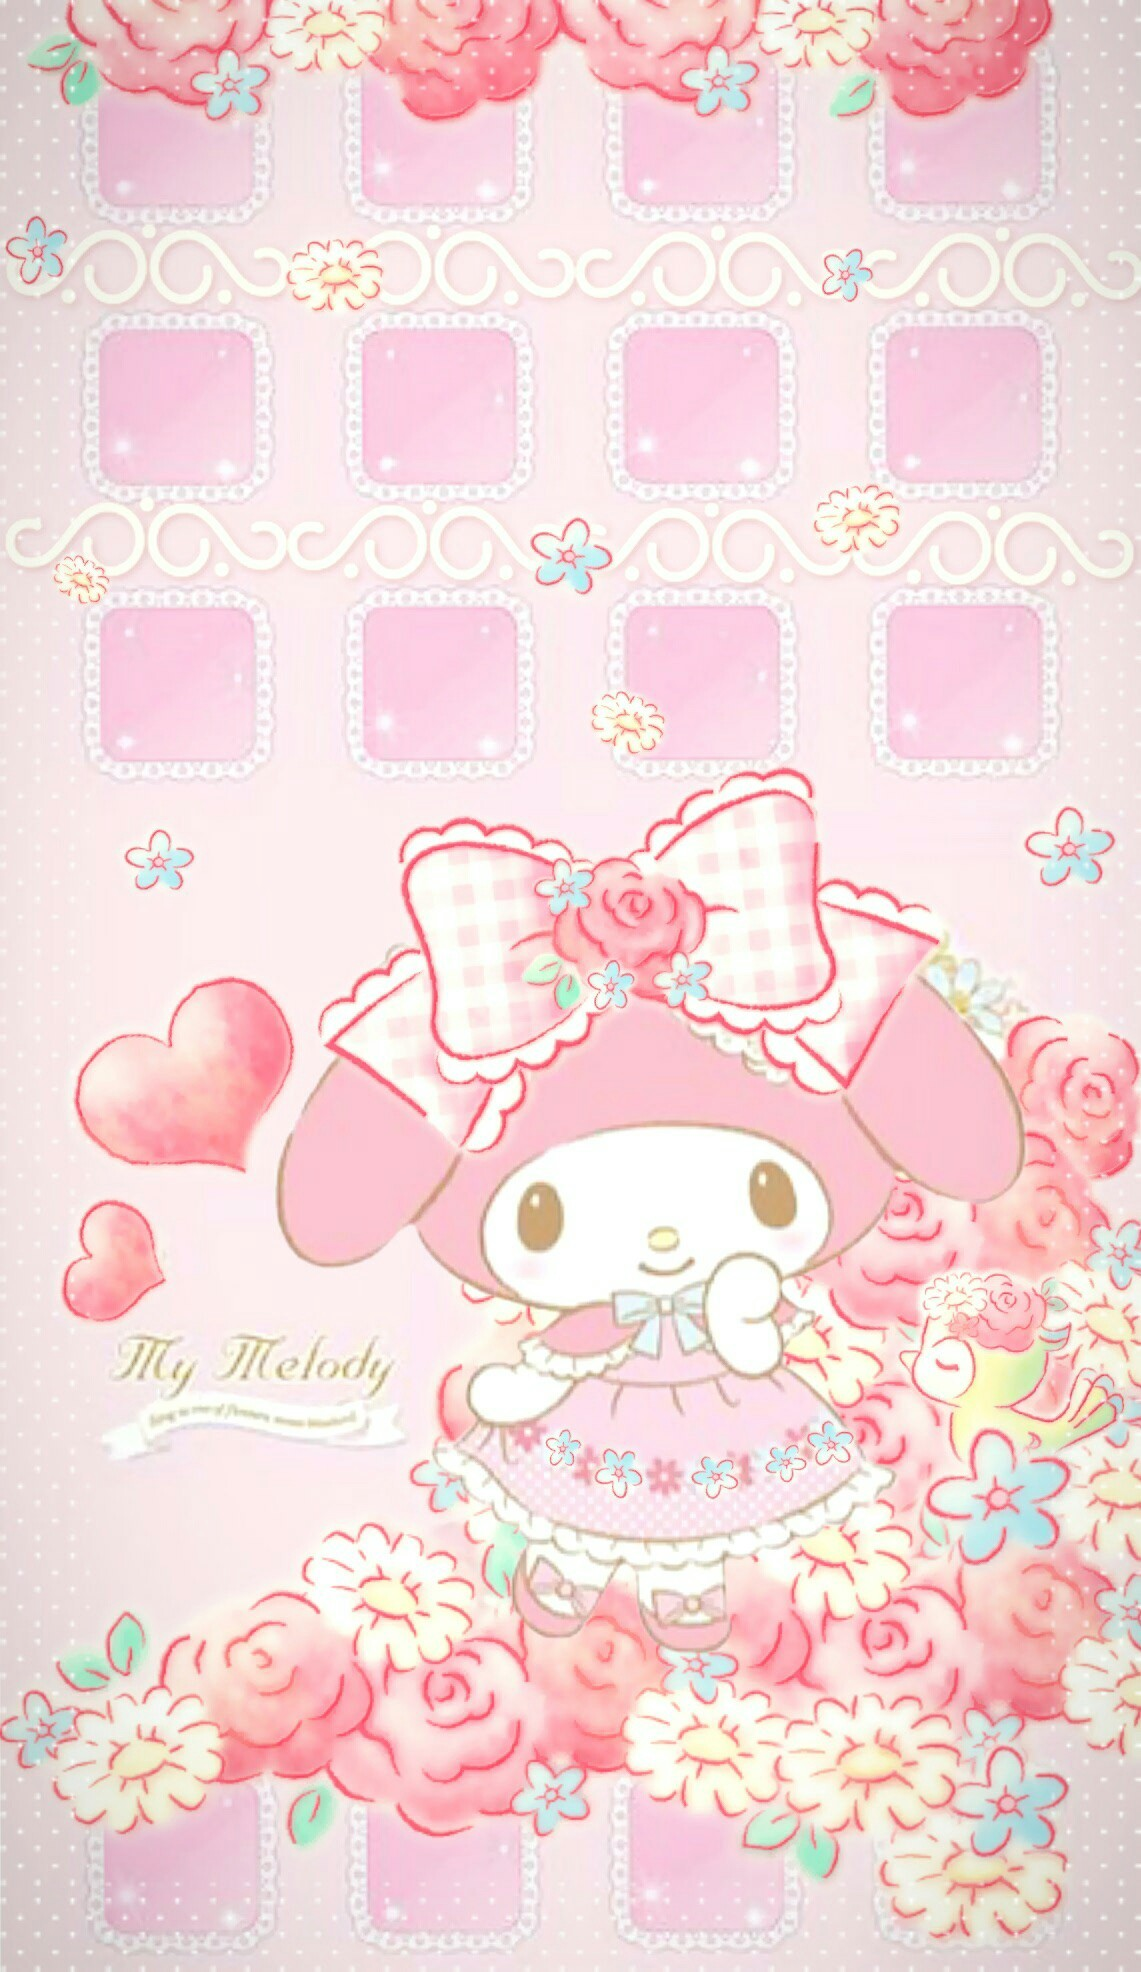 Cute Sweet Wallpapers For Phone My Melody Wallpaper For Iphone 76 Images